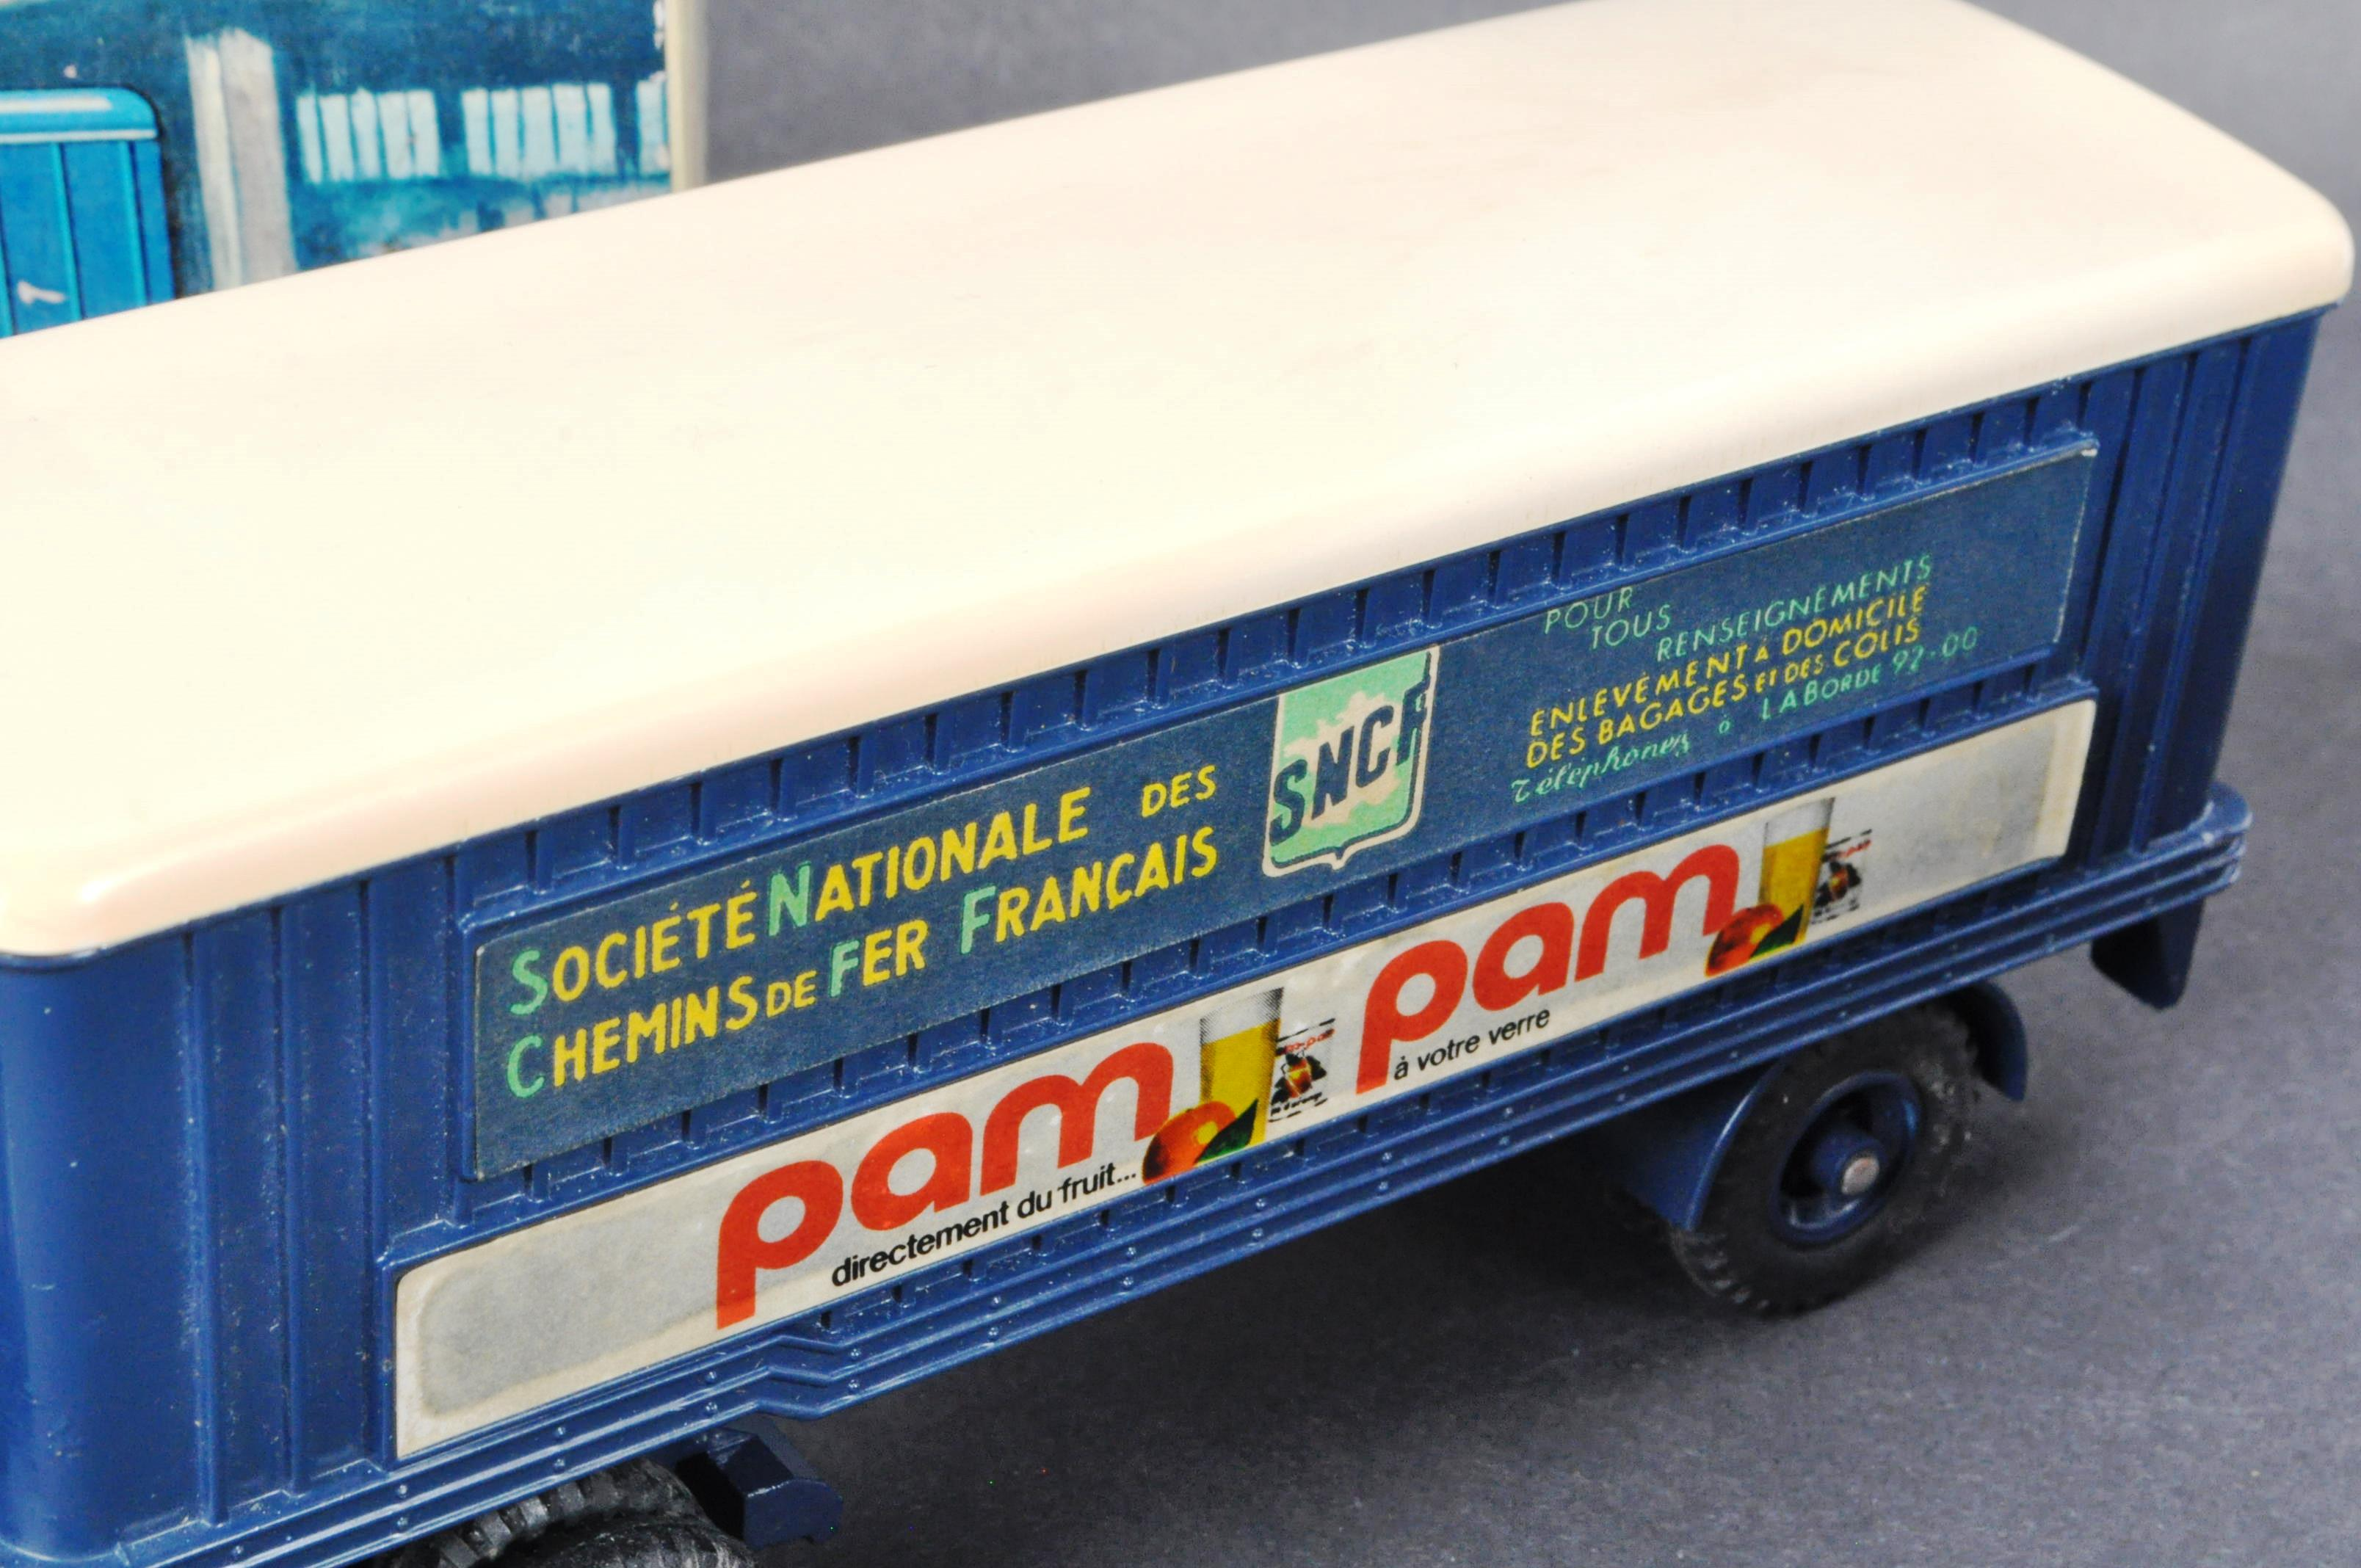 FRENCH DINKY TOYS - ORIGINAL BOXED VINTAGE DIECAST MODEL - Image 4 of 6